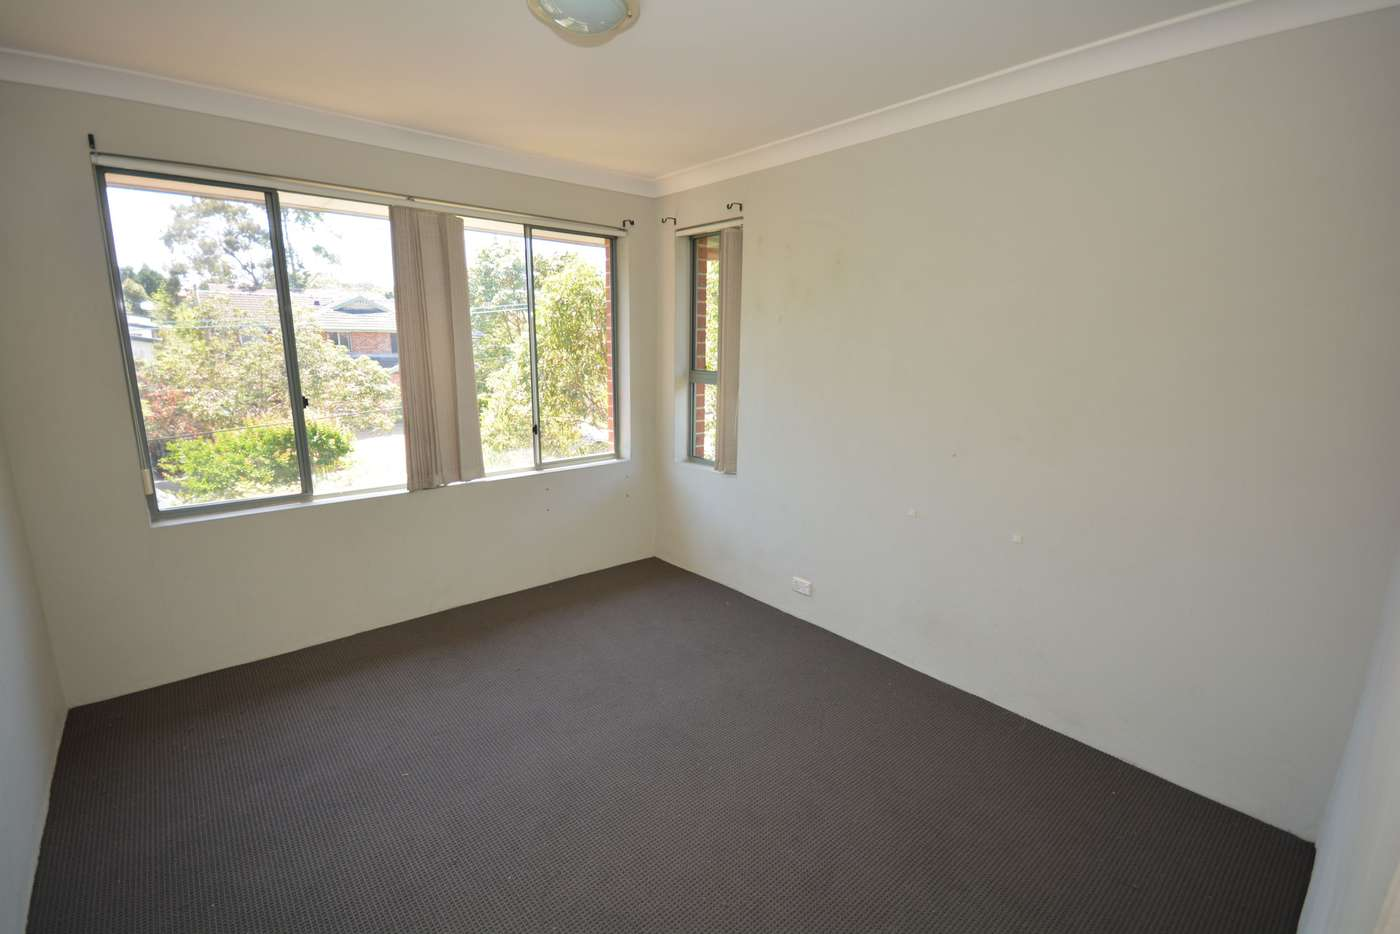 Sixth view of Homely apartment listing, 7/9-11 Belmore Street, North Parramatta NSW 2151